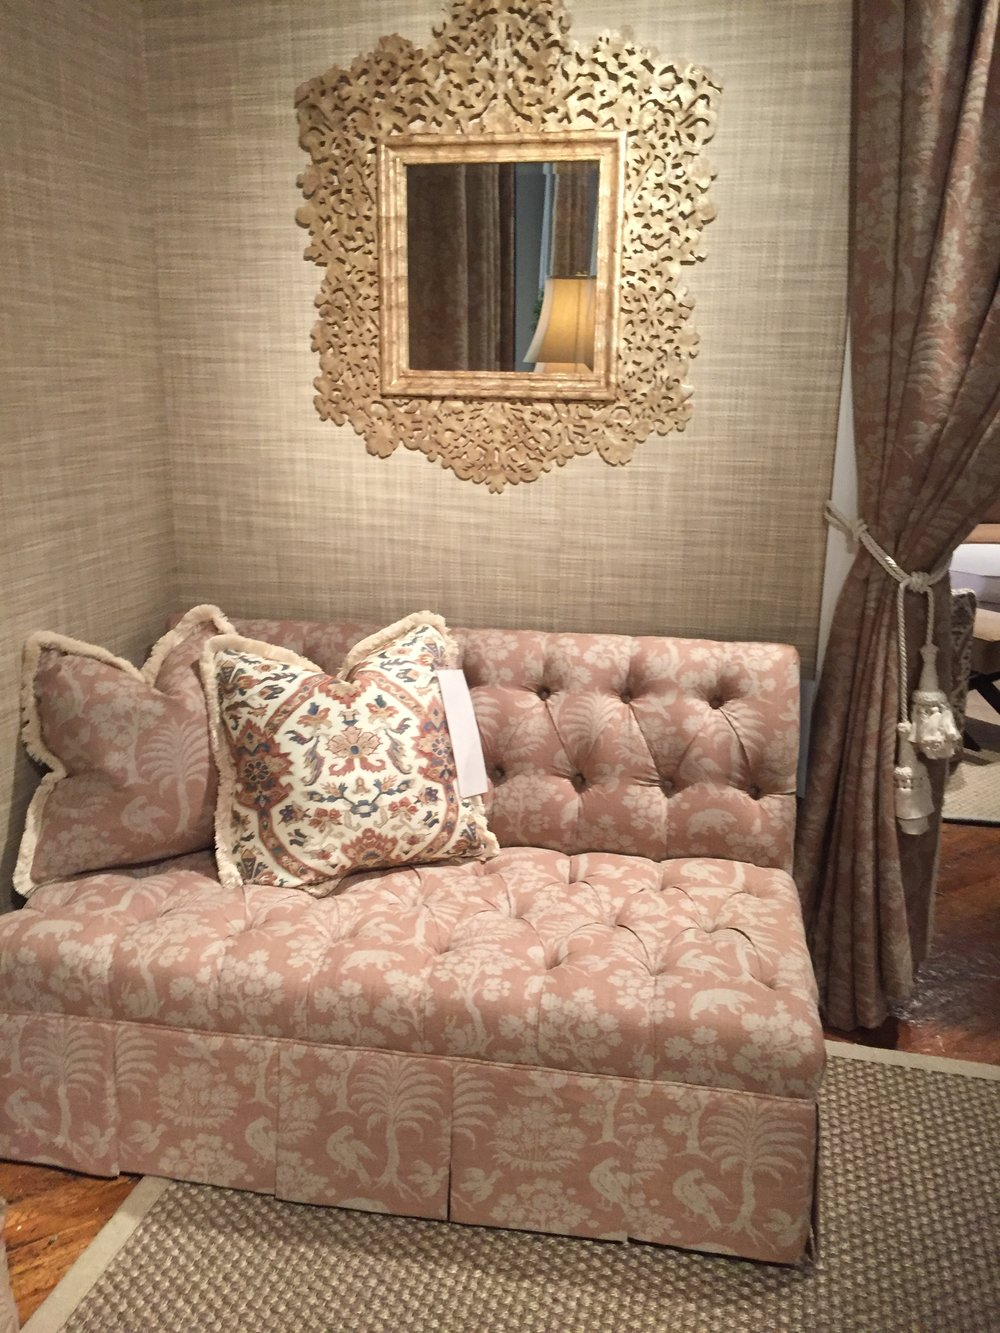 A Dusty Pink And Creme Palm Tree Print Covers An Upholstered Corner Settee  With Tufting And A Tailored Skirt